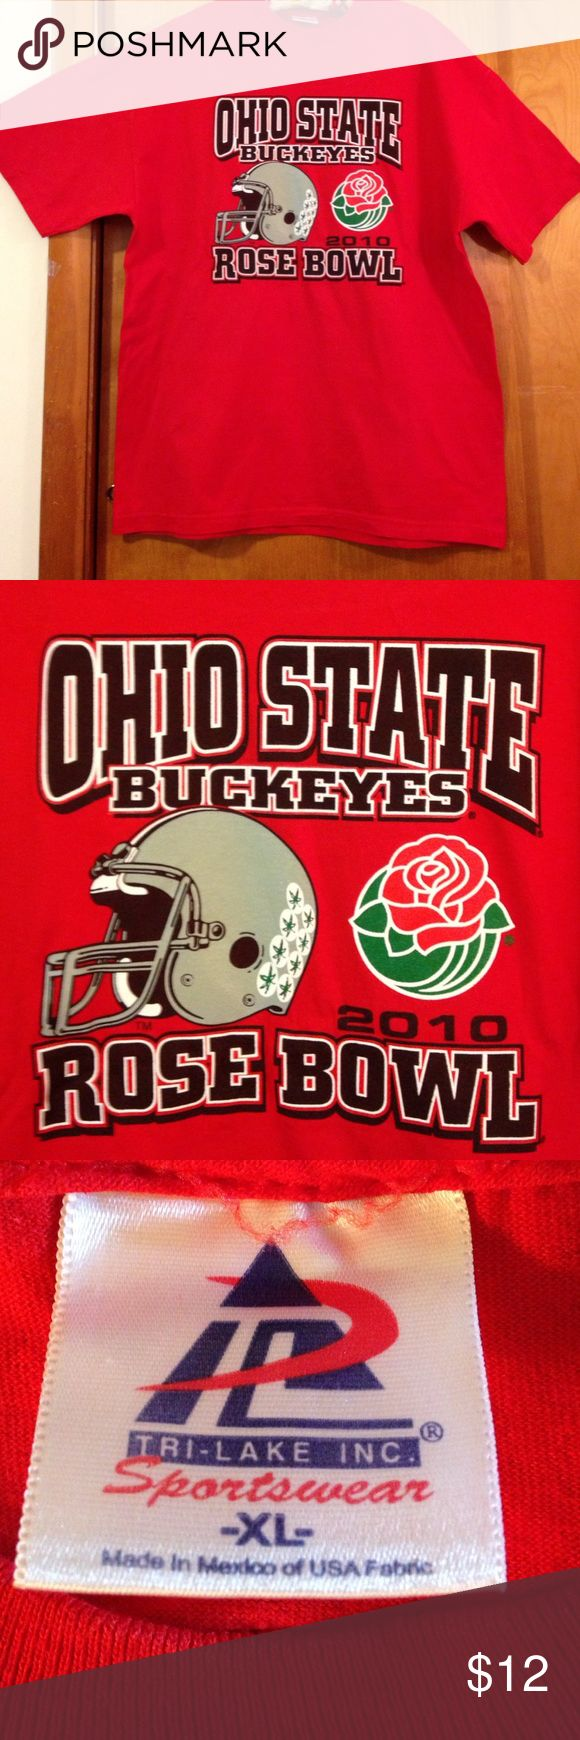 Ohio State Buckeyes 2010 Rose Bowl tee size XL Ohio State men's tee shirt made from 100% cotton. Underarm to underarm 23 inches. Shoulder to bottom of tee shirt 29 3/4 inches Shirts Tees - Short Sleeve